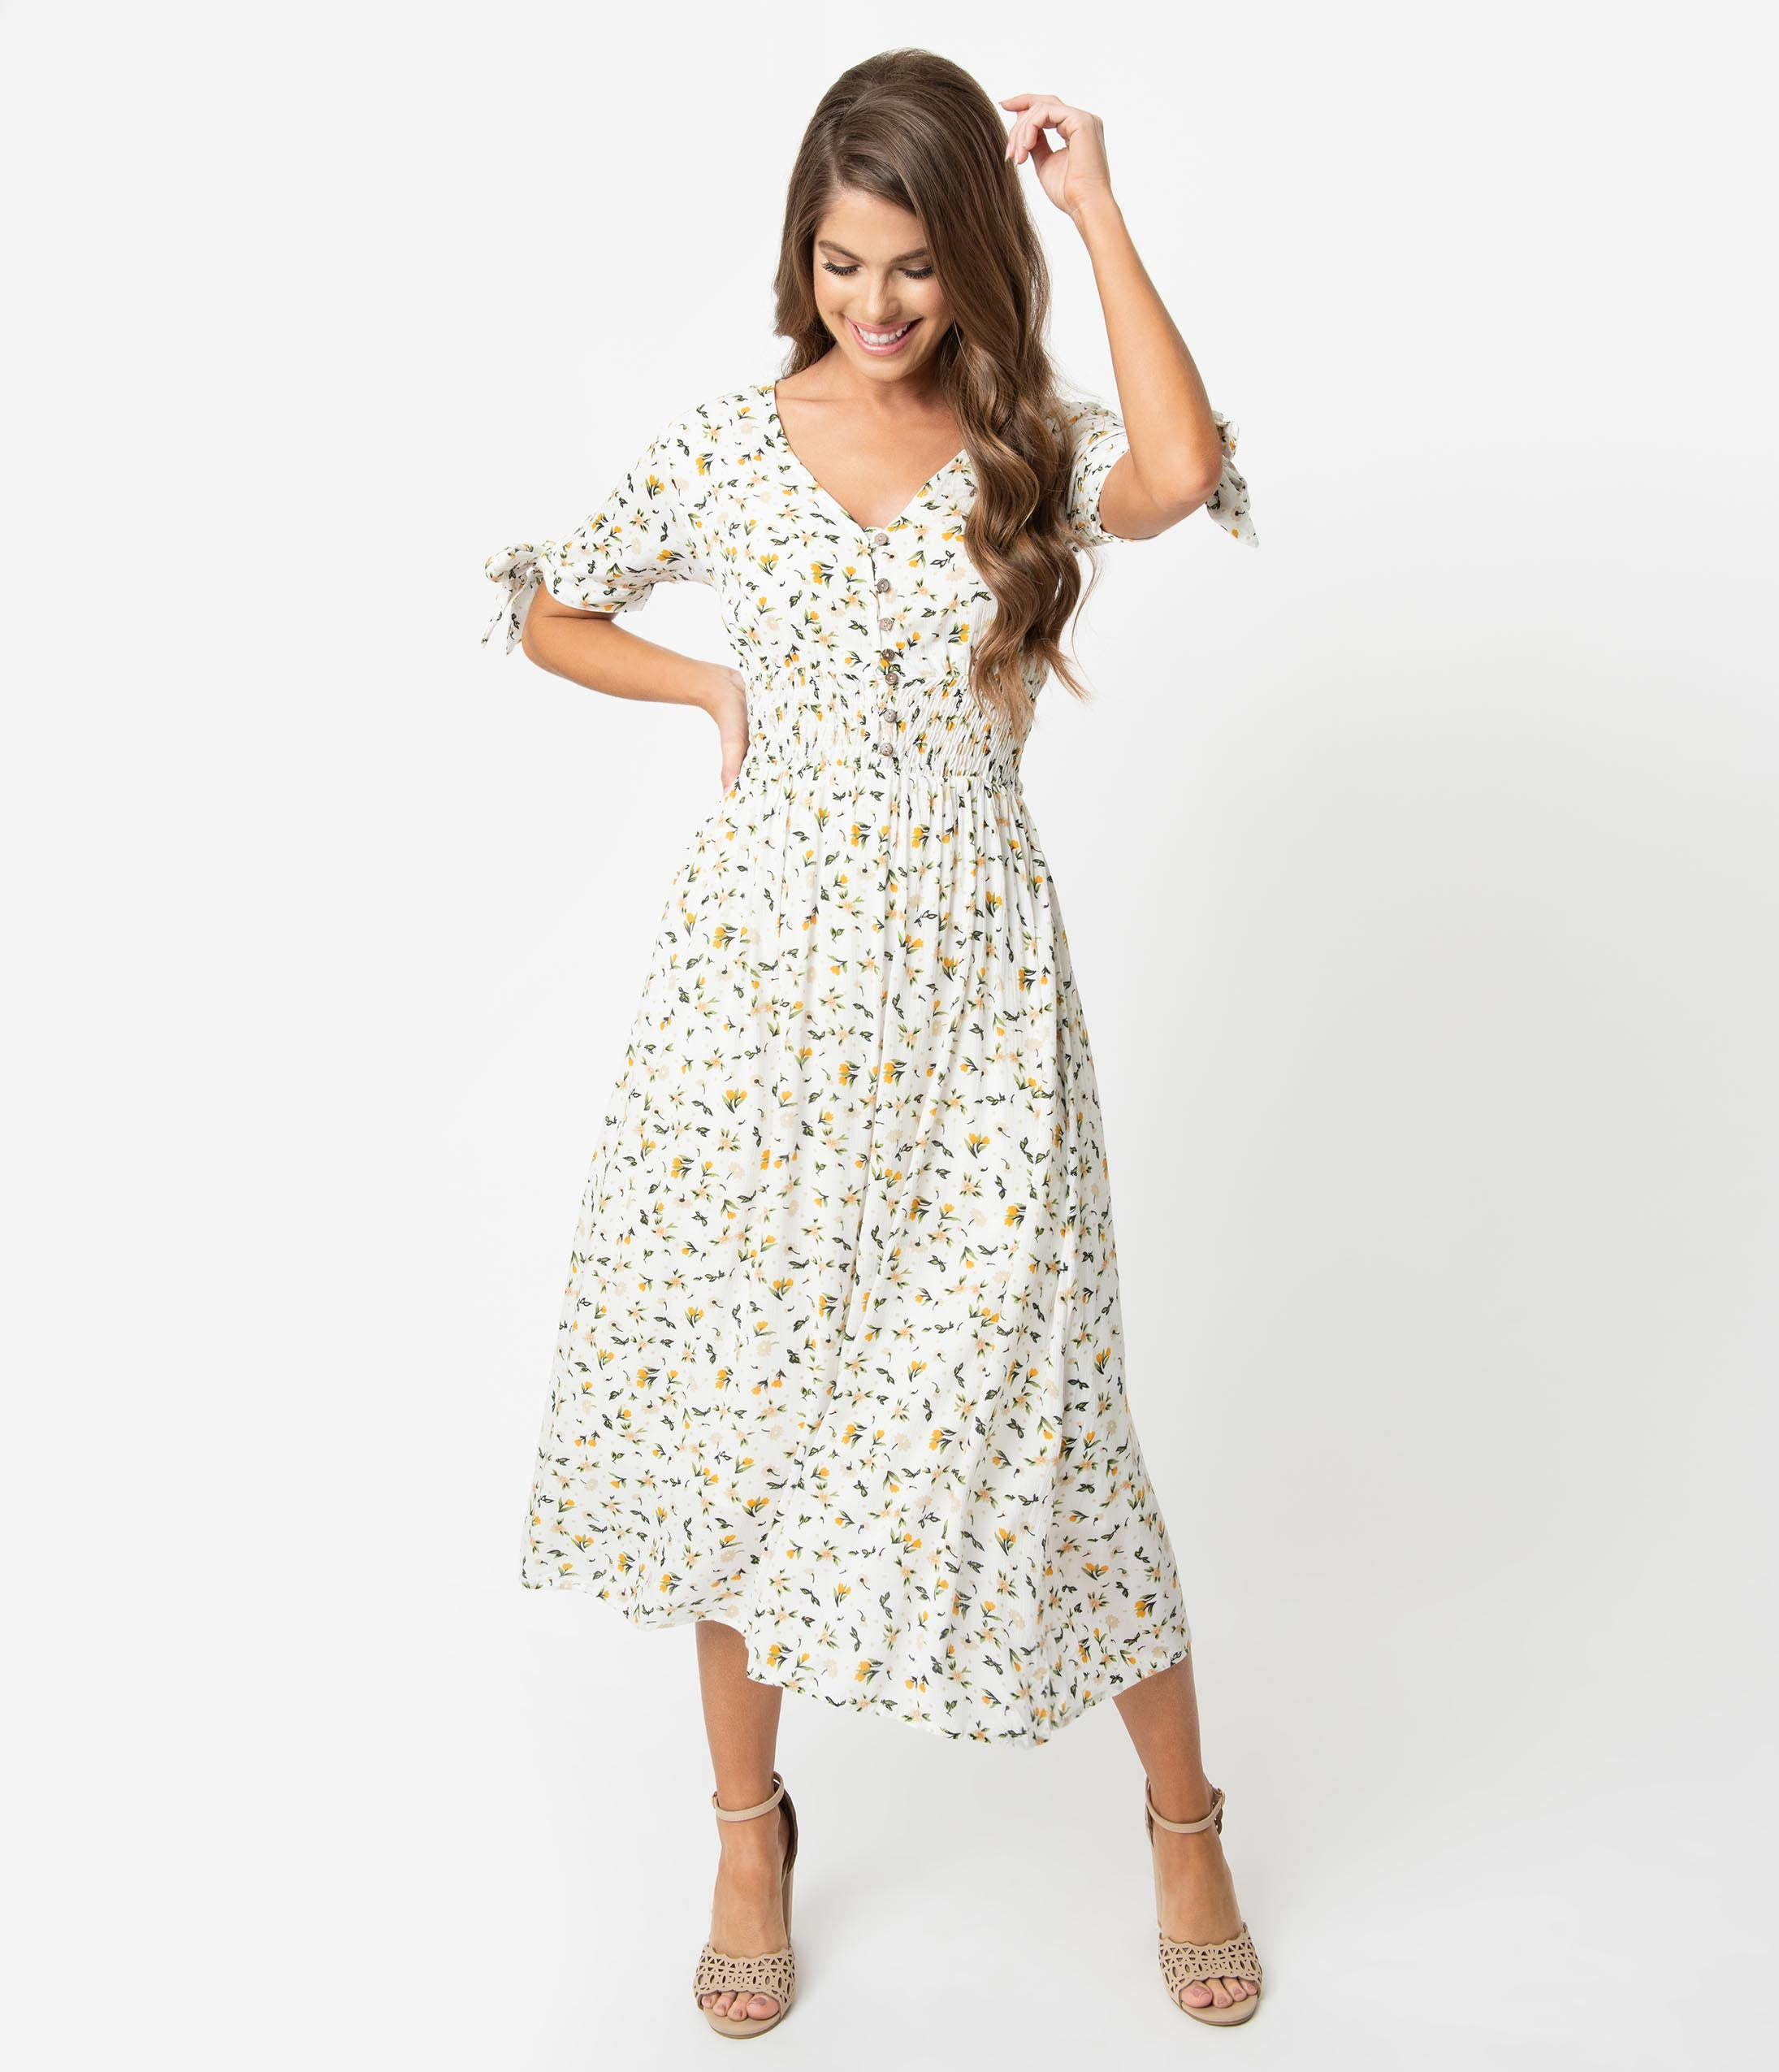 13b48be547ad 1970s Style Ivory & Yellow Delicate Floral Print Short Sleeve Midi Dress